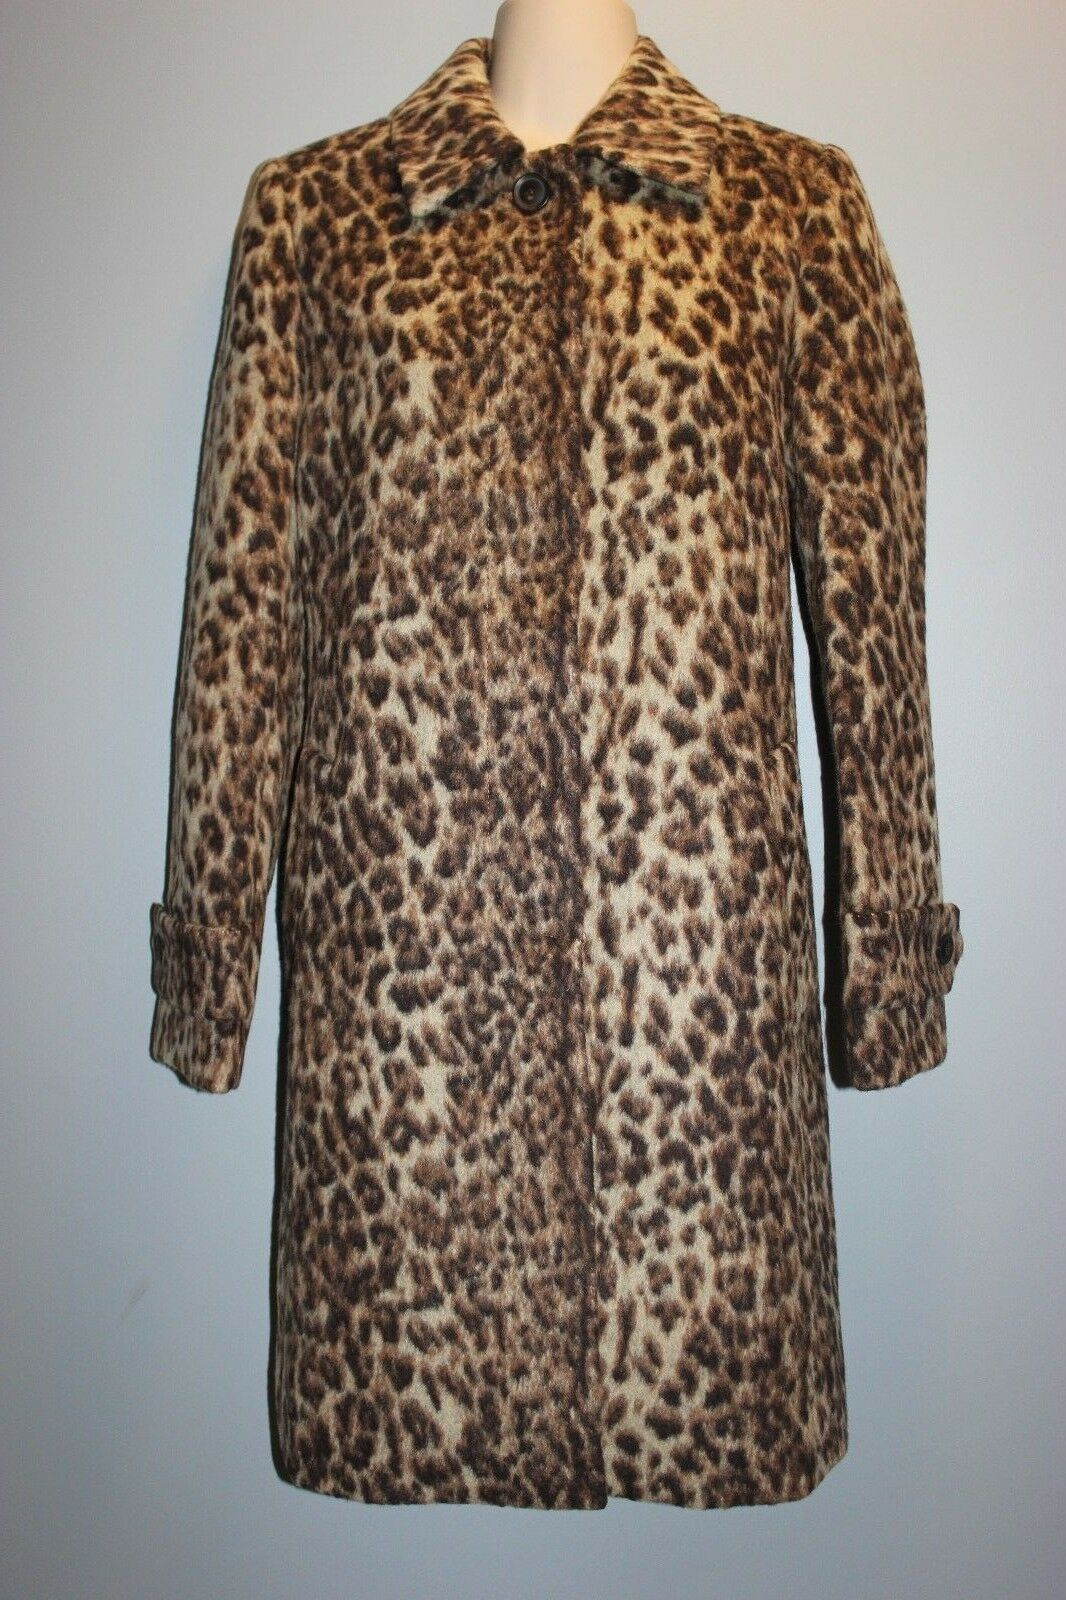 49e3410e9c NEW J CREW LEOPARD Wool Topcoat SIZE 6 H2734 FALL 2017 Womens Coat ...